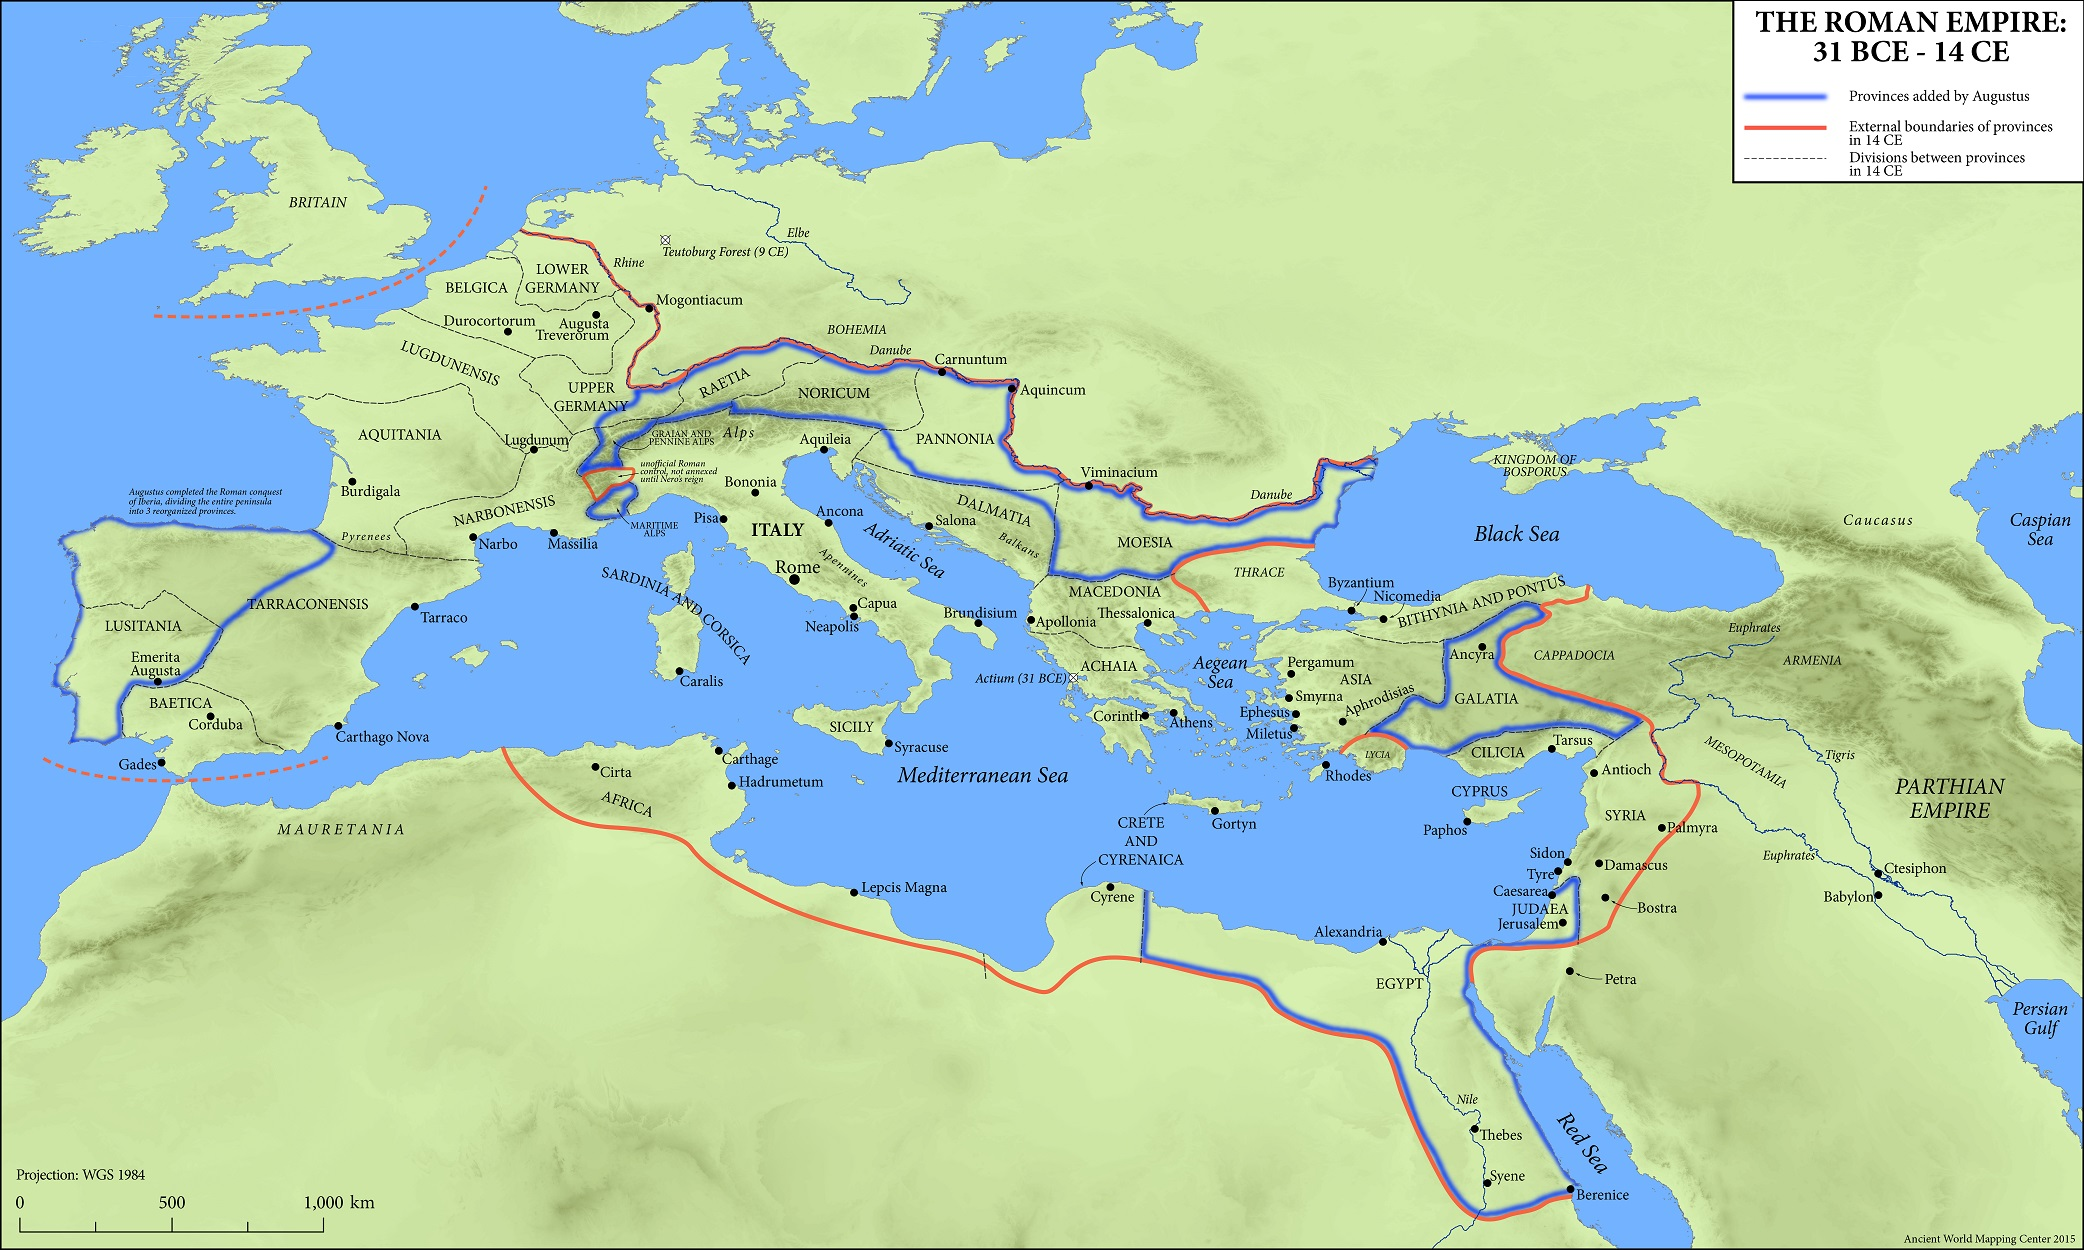 Maps of the ancient world oxford classical dictionary the reign of augustus gumiabroncs Choice Image